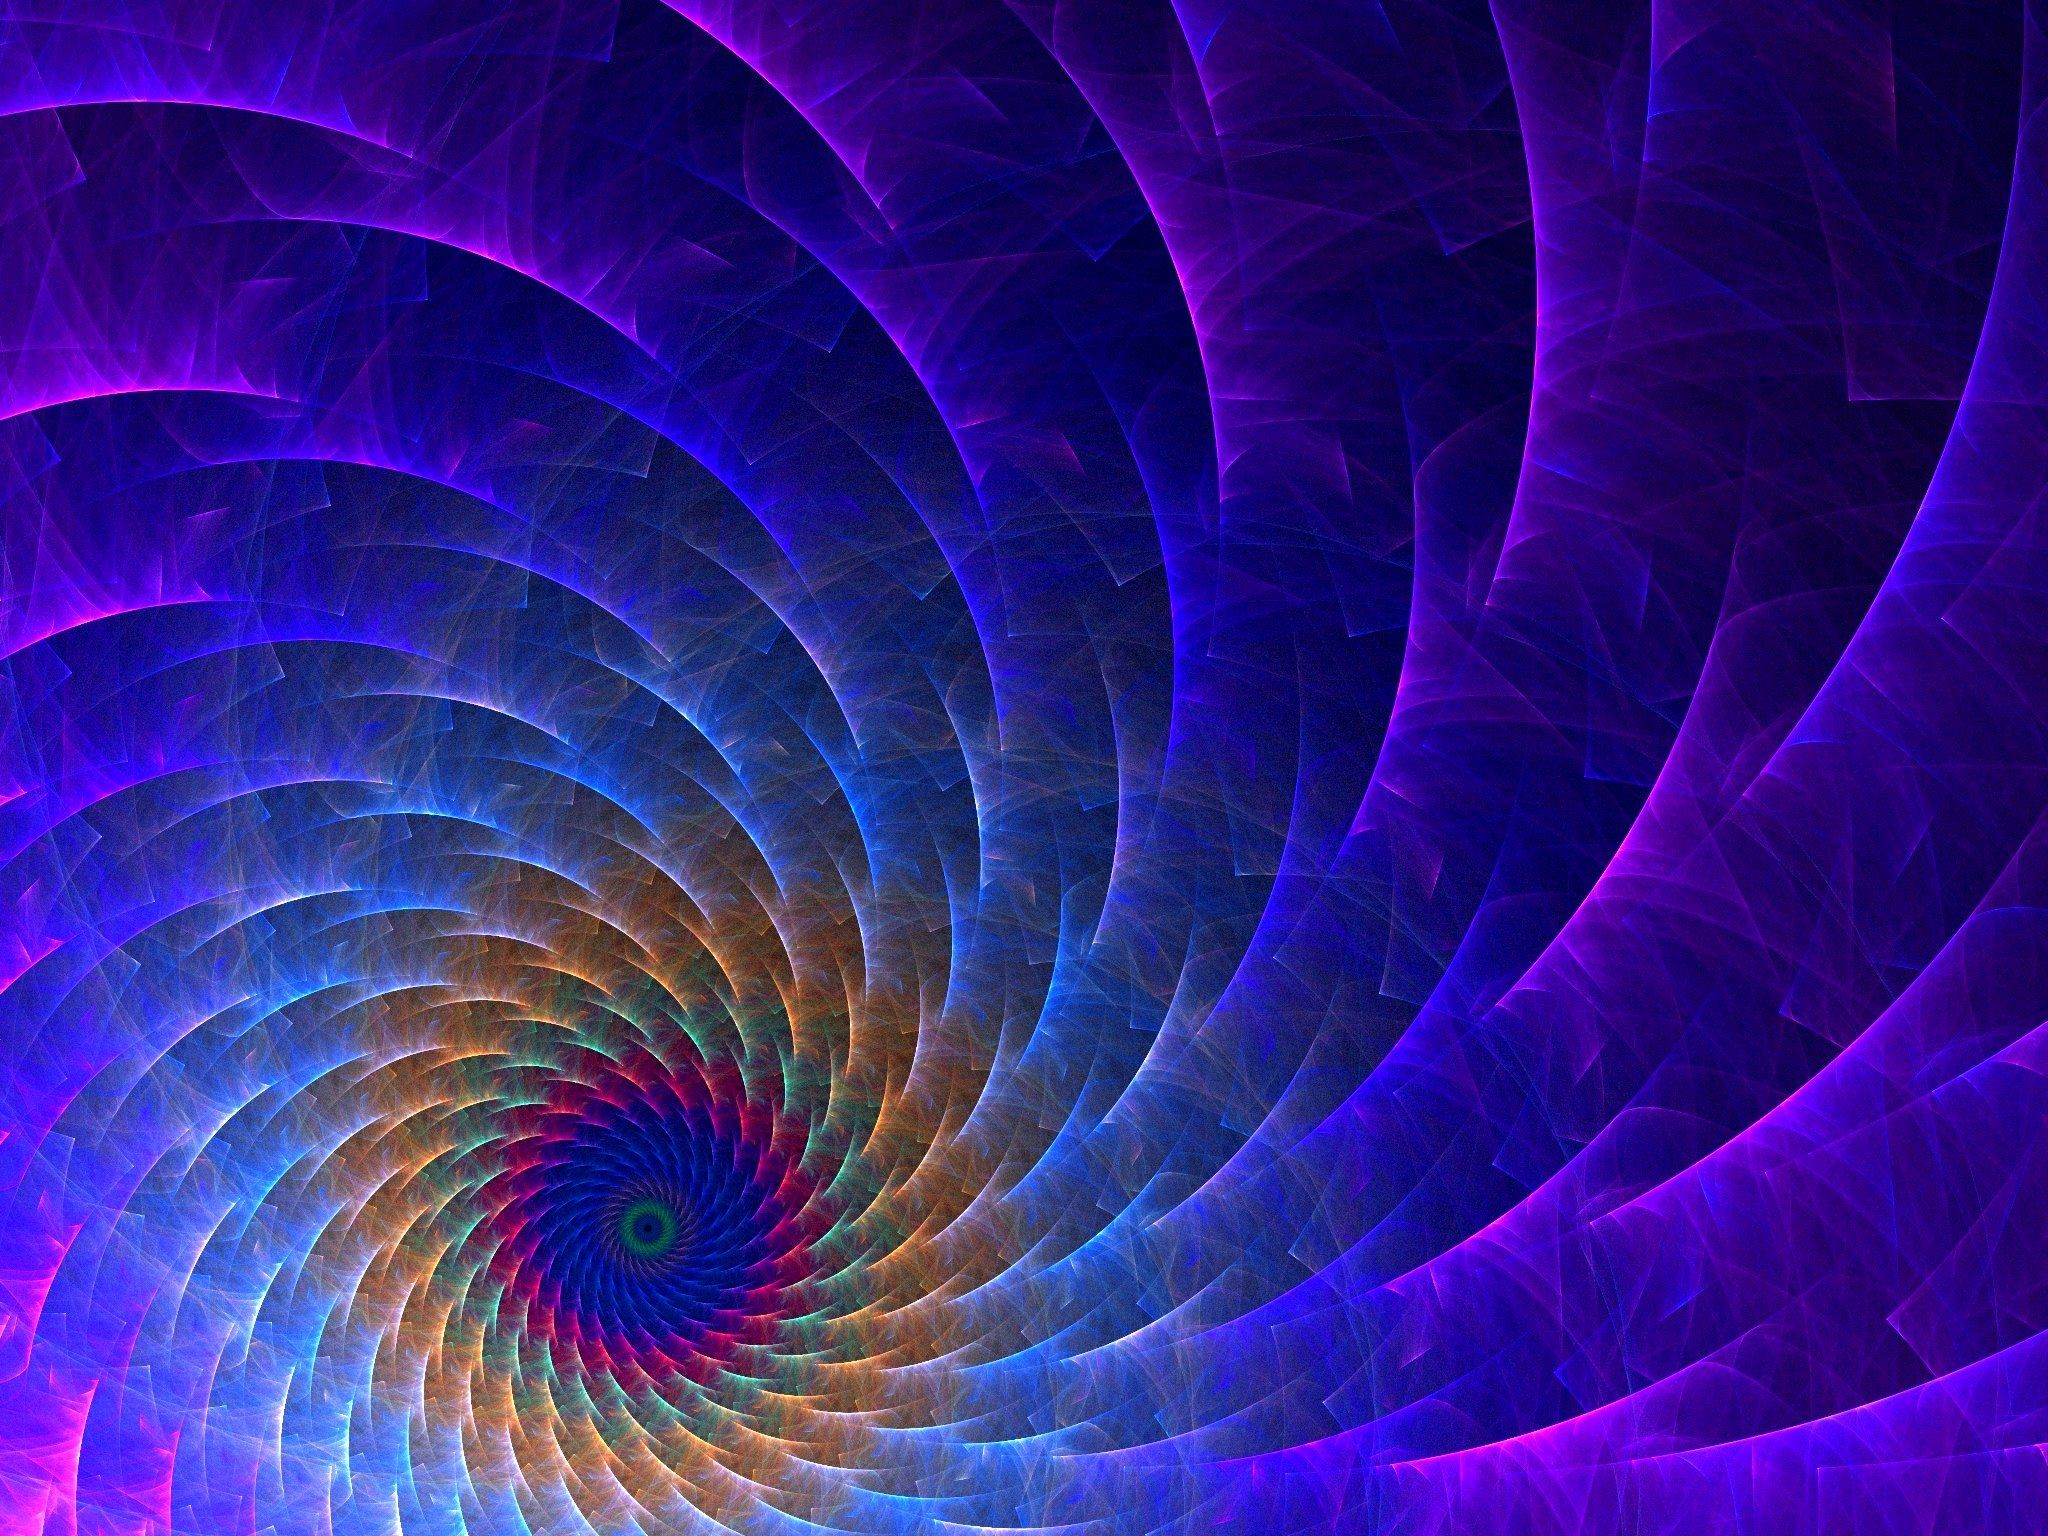 Vortex, abstract, Apophysis, background, blue, colored .